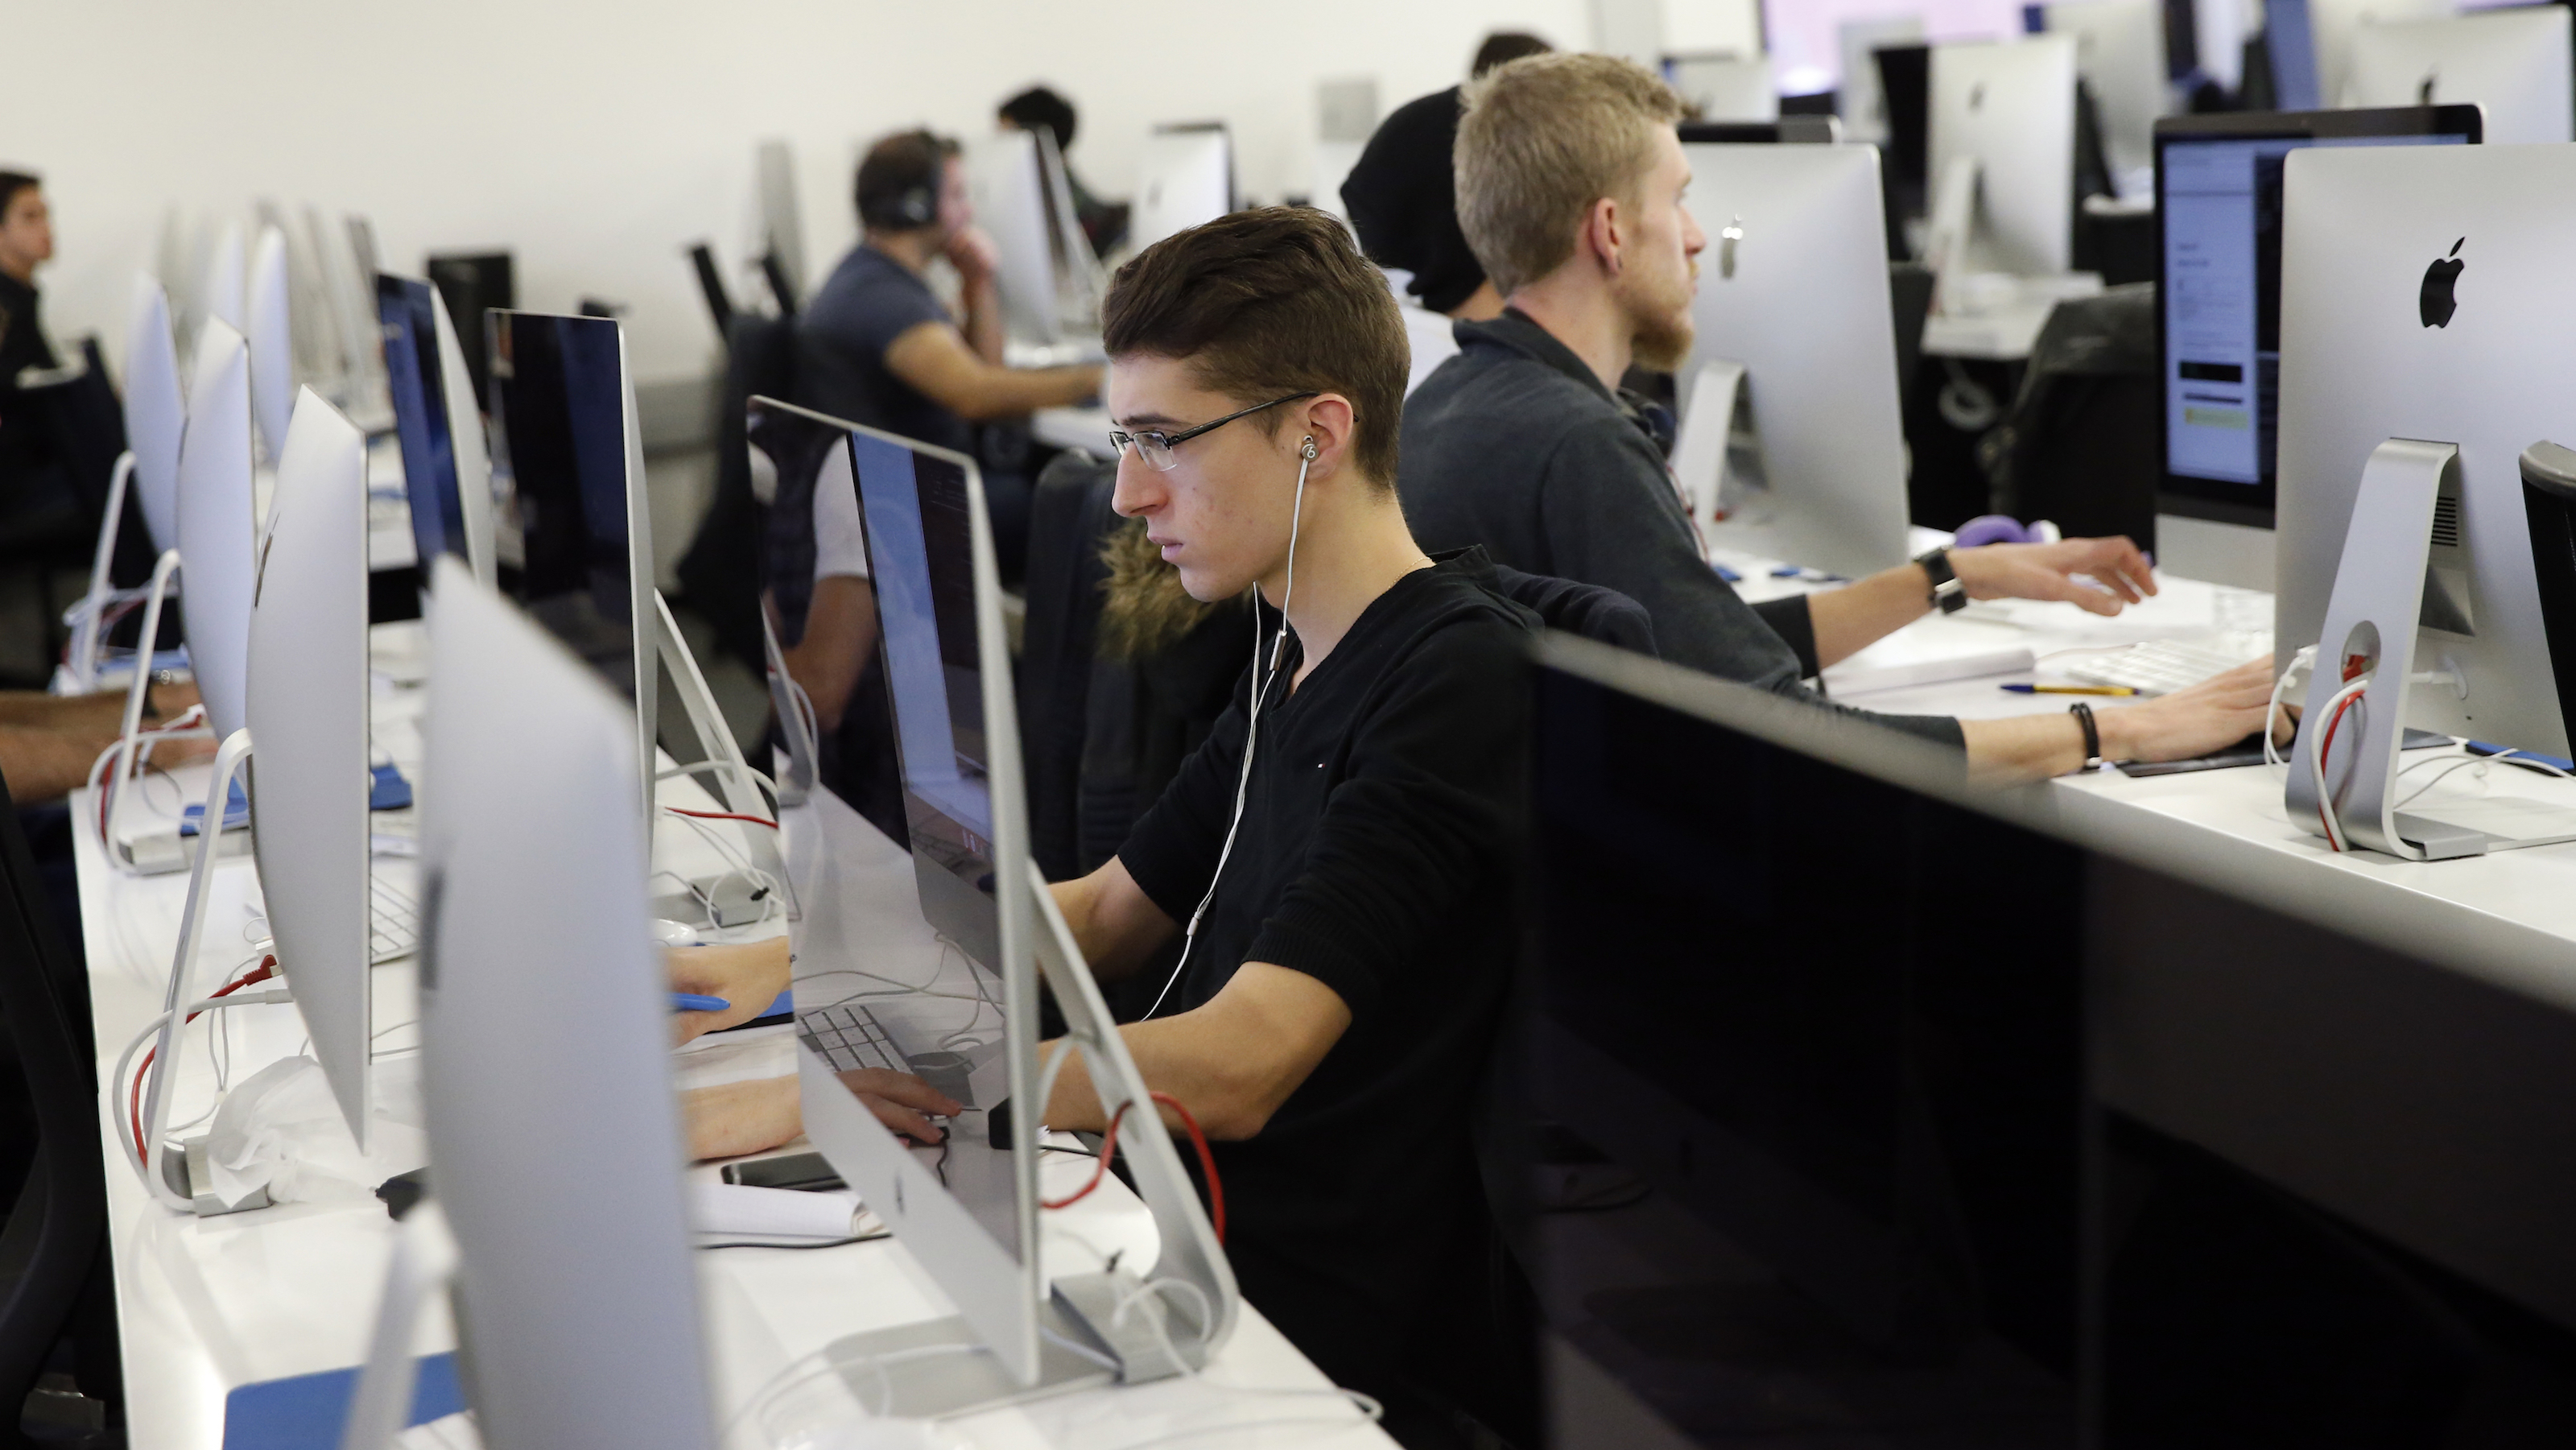 Students work on computers at the 42 school campus in Paris, France, October 27, 2015. The French school 42, is a private French computer programming school.  REUTERS/Benoit Tessier - RTX1TH9K